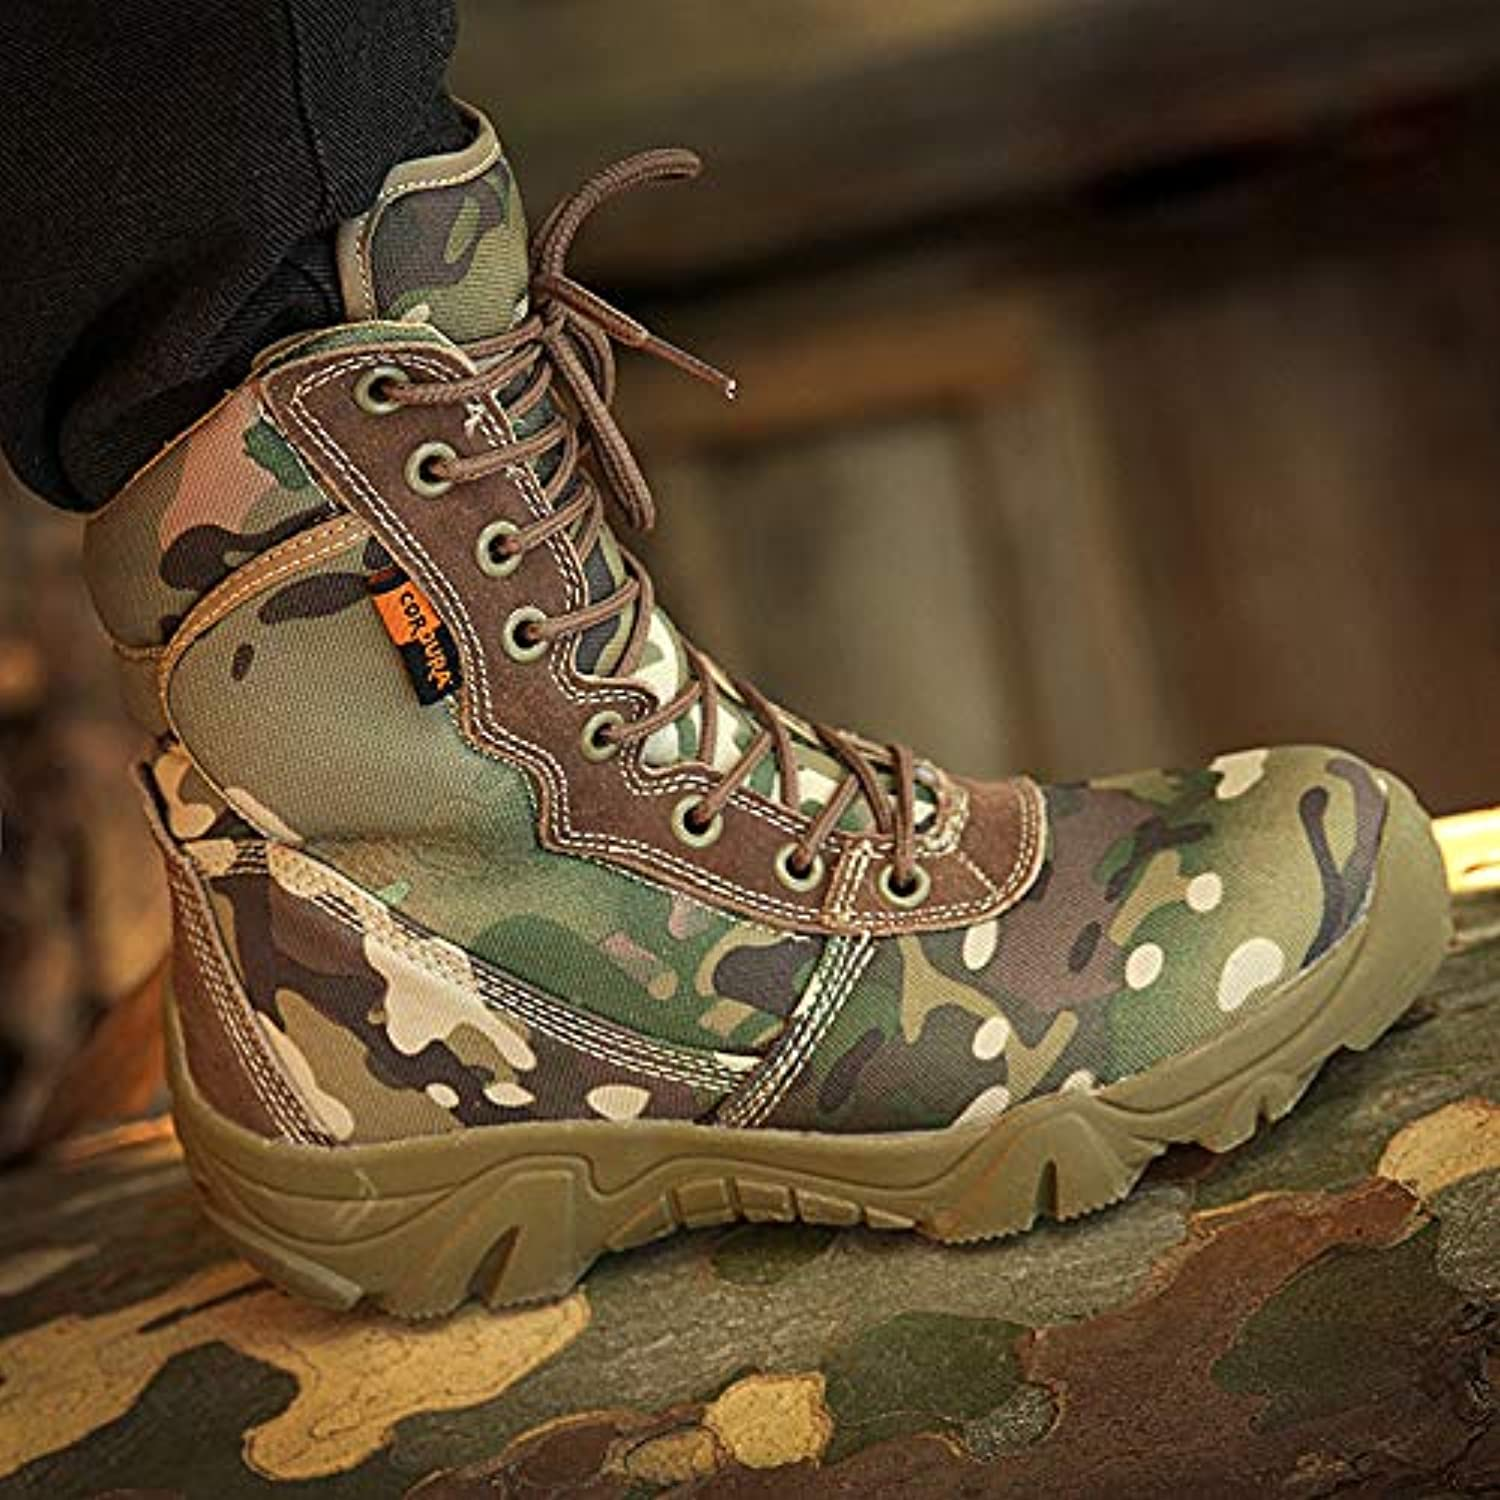 HCBYJ shoes Camouflage military boots commando combat boots desert tactical training autumn and winter outdoor hiking shoes land warfare ultralight